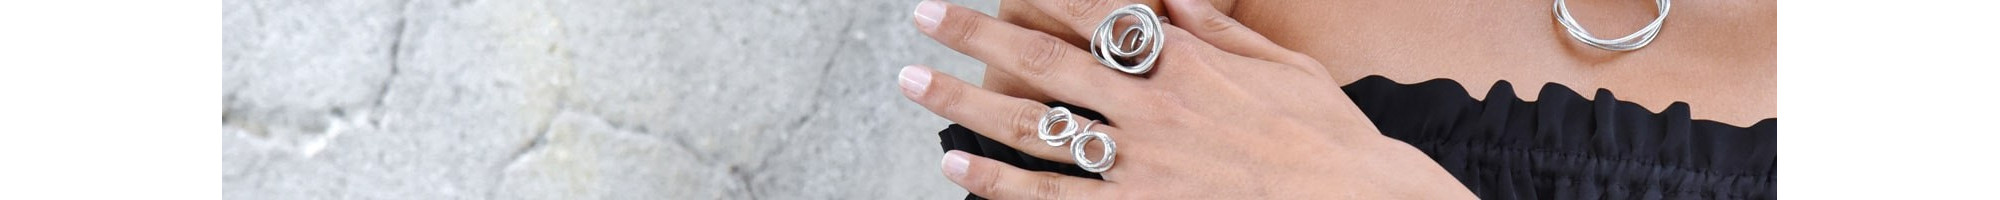 Silver Plated Rings | Elegant & affordable - Online at BIJOU BOX